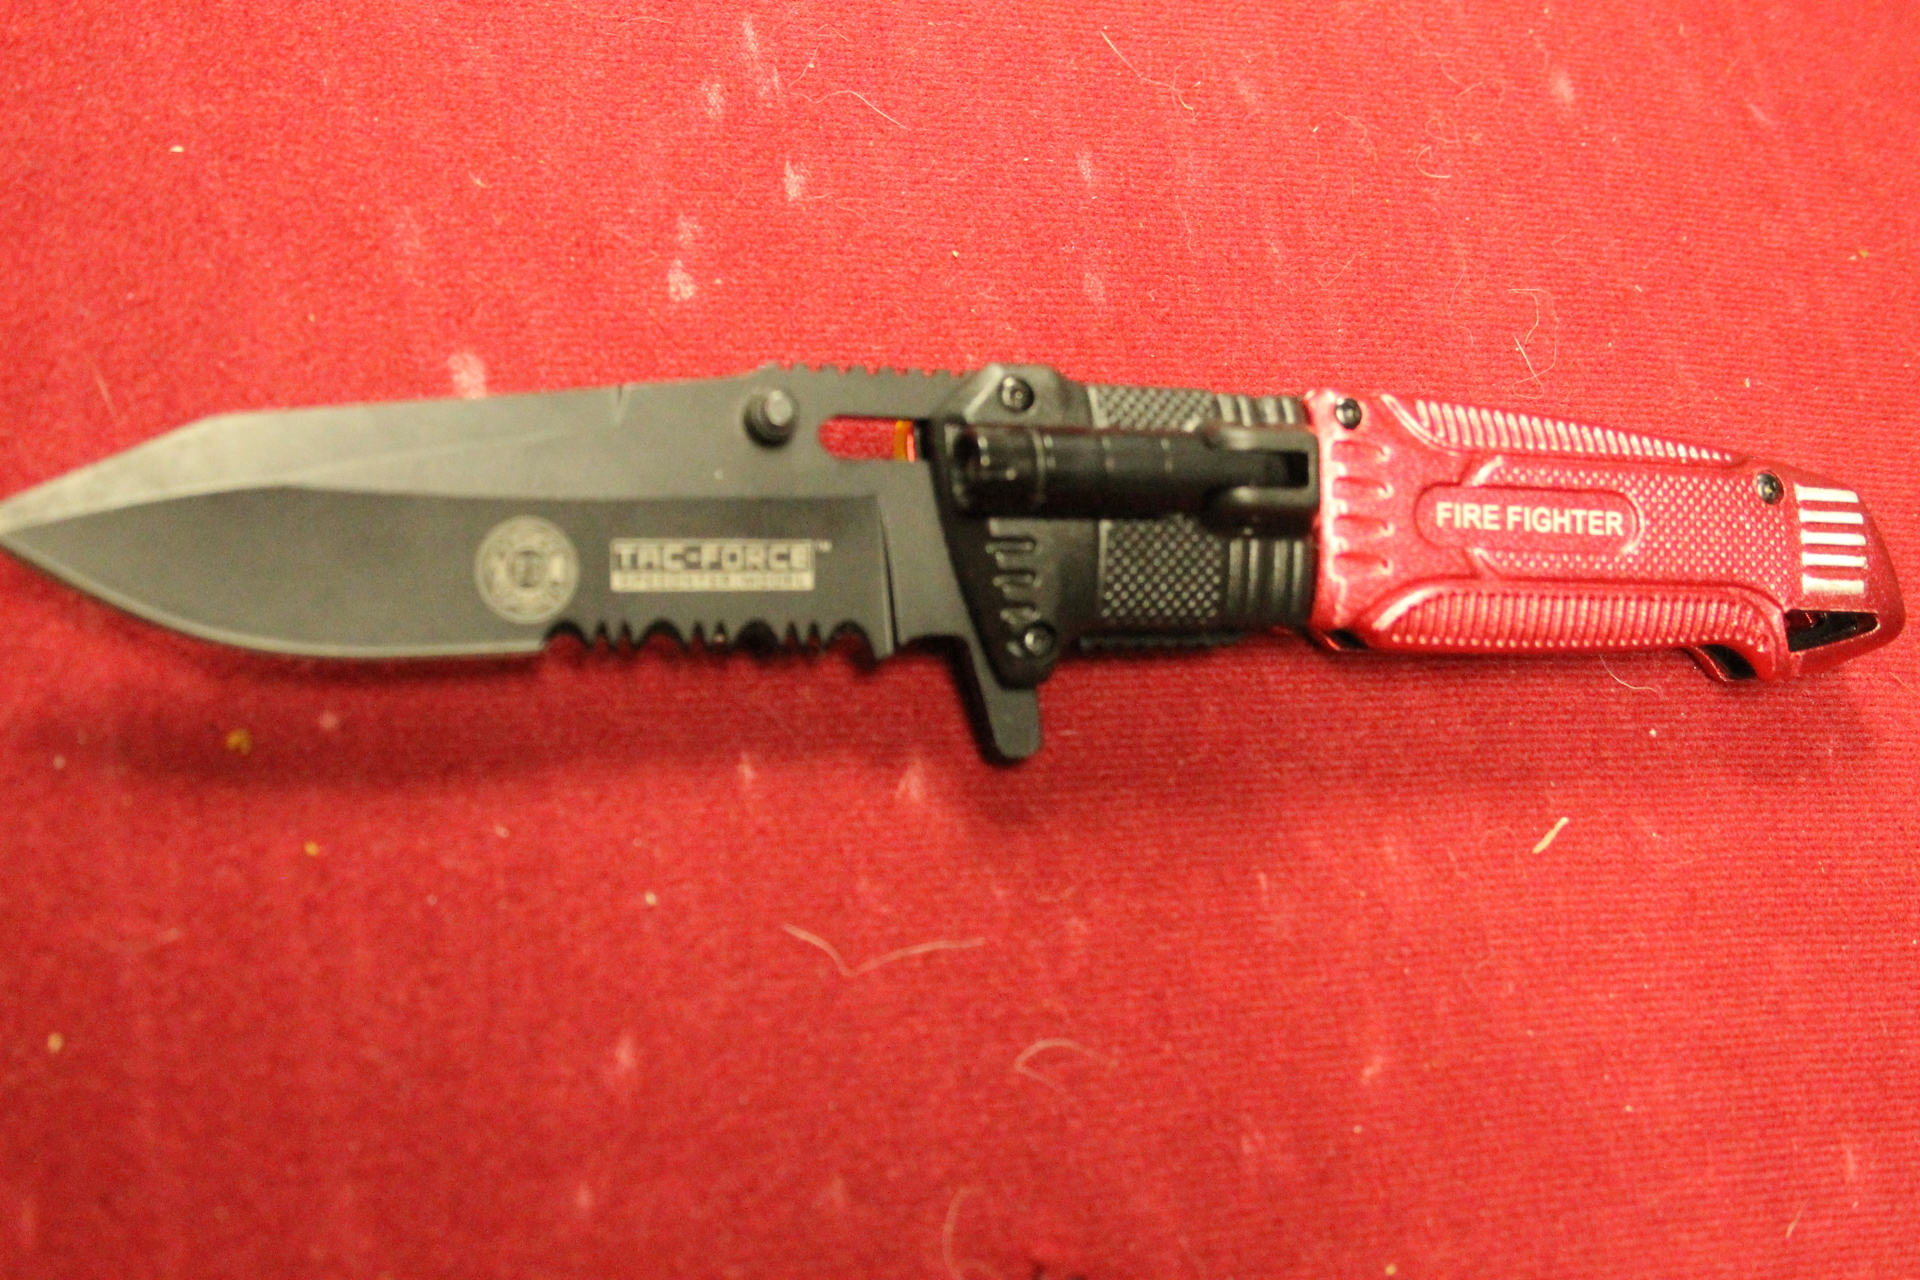 Tac Force Fire Fighter Linerlock A/O $9.99